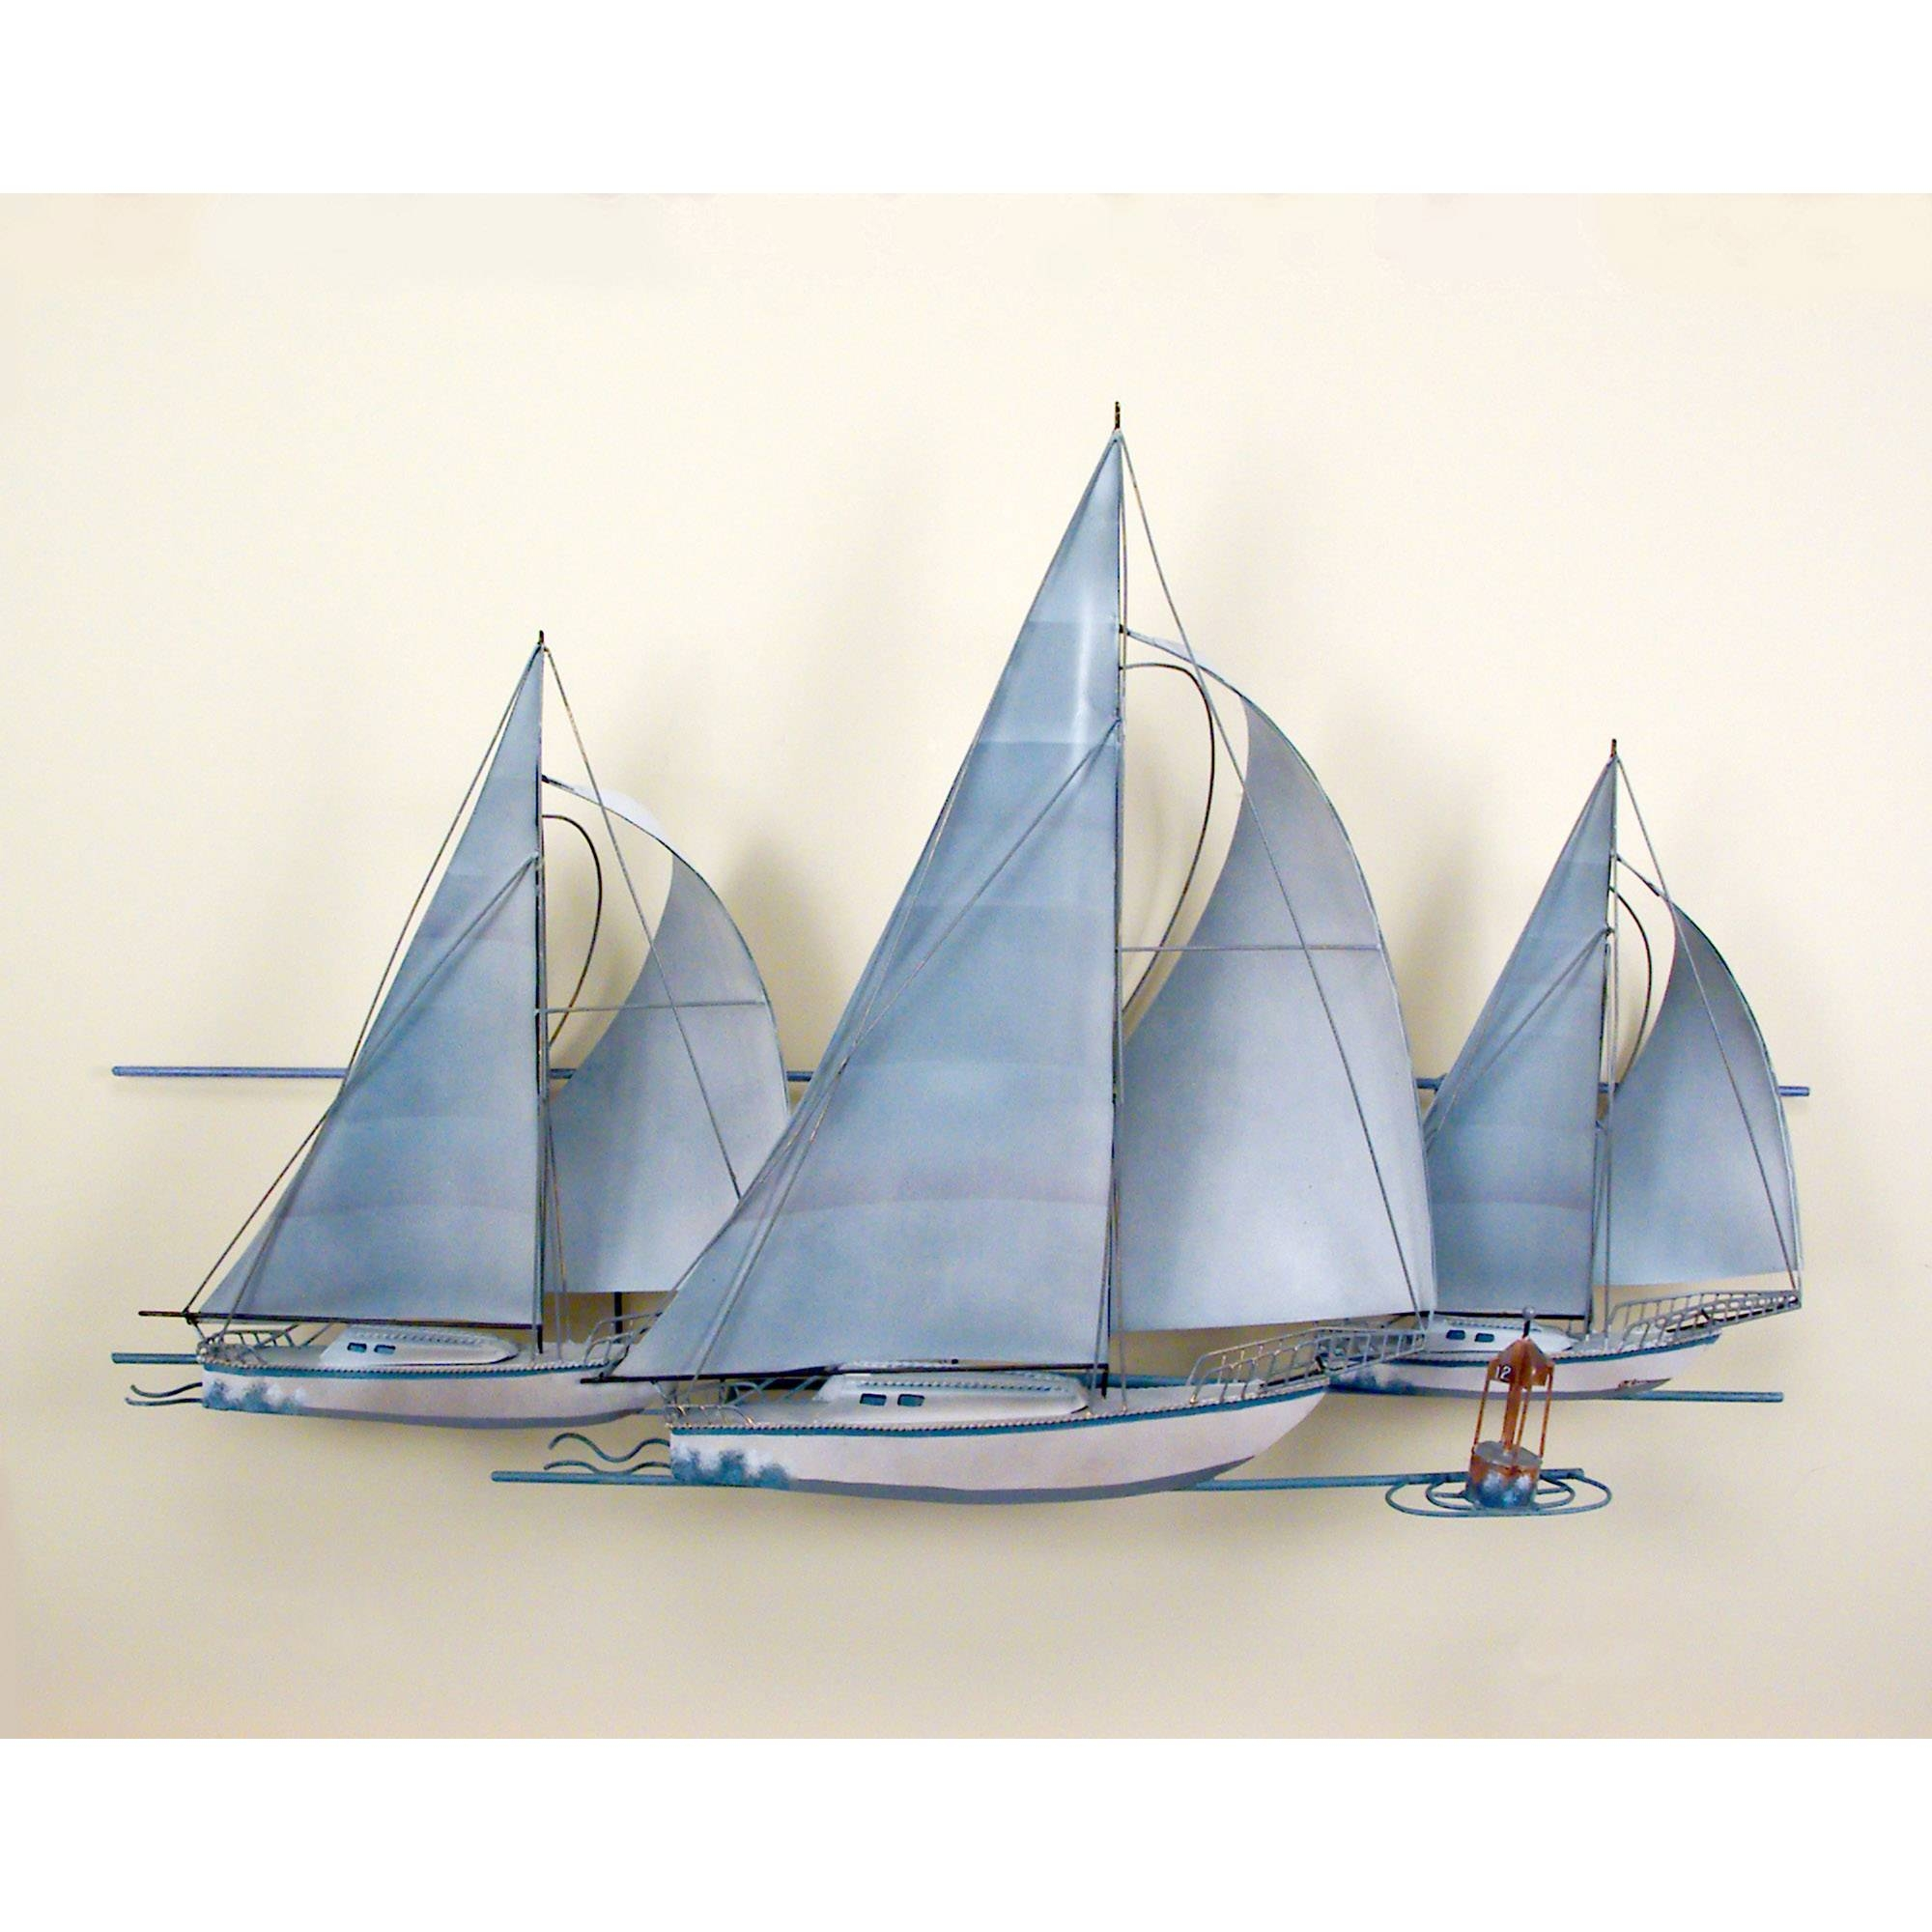 At The Races,three Sail Boats, Race, Wall Art, Wall Hanging With Best And Newest Metal Sailboat Wall Art (View 8 of 30)